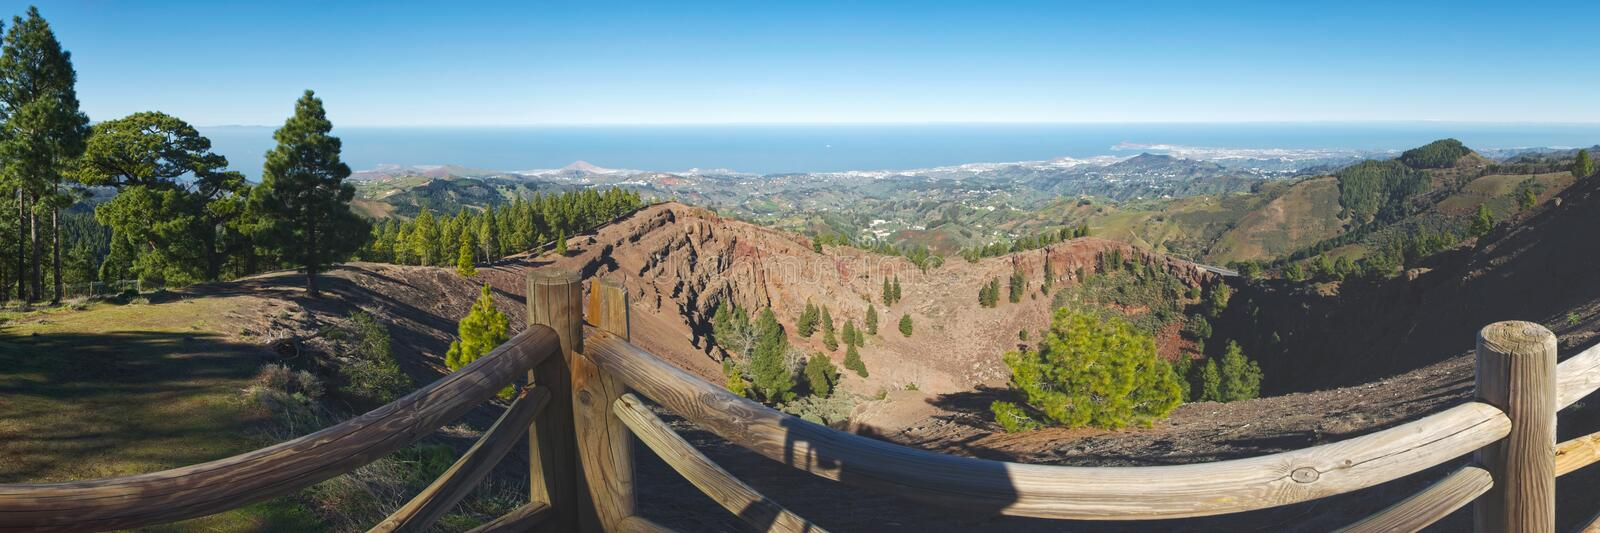 Panoramic view from Pinos del Galdar into the Crater rim, Gran Canaria. (Spain stock photo